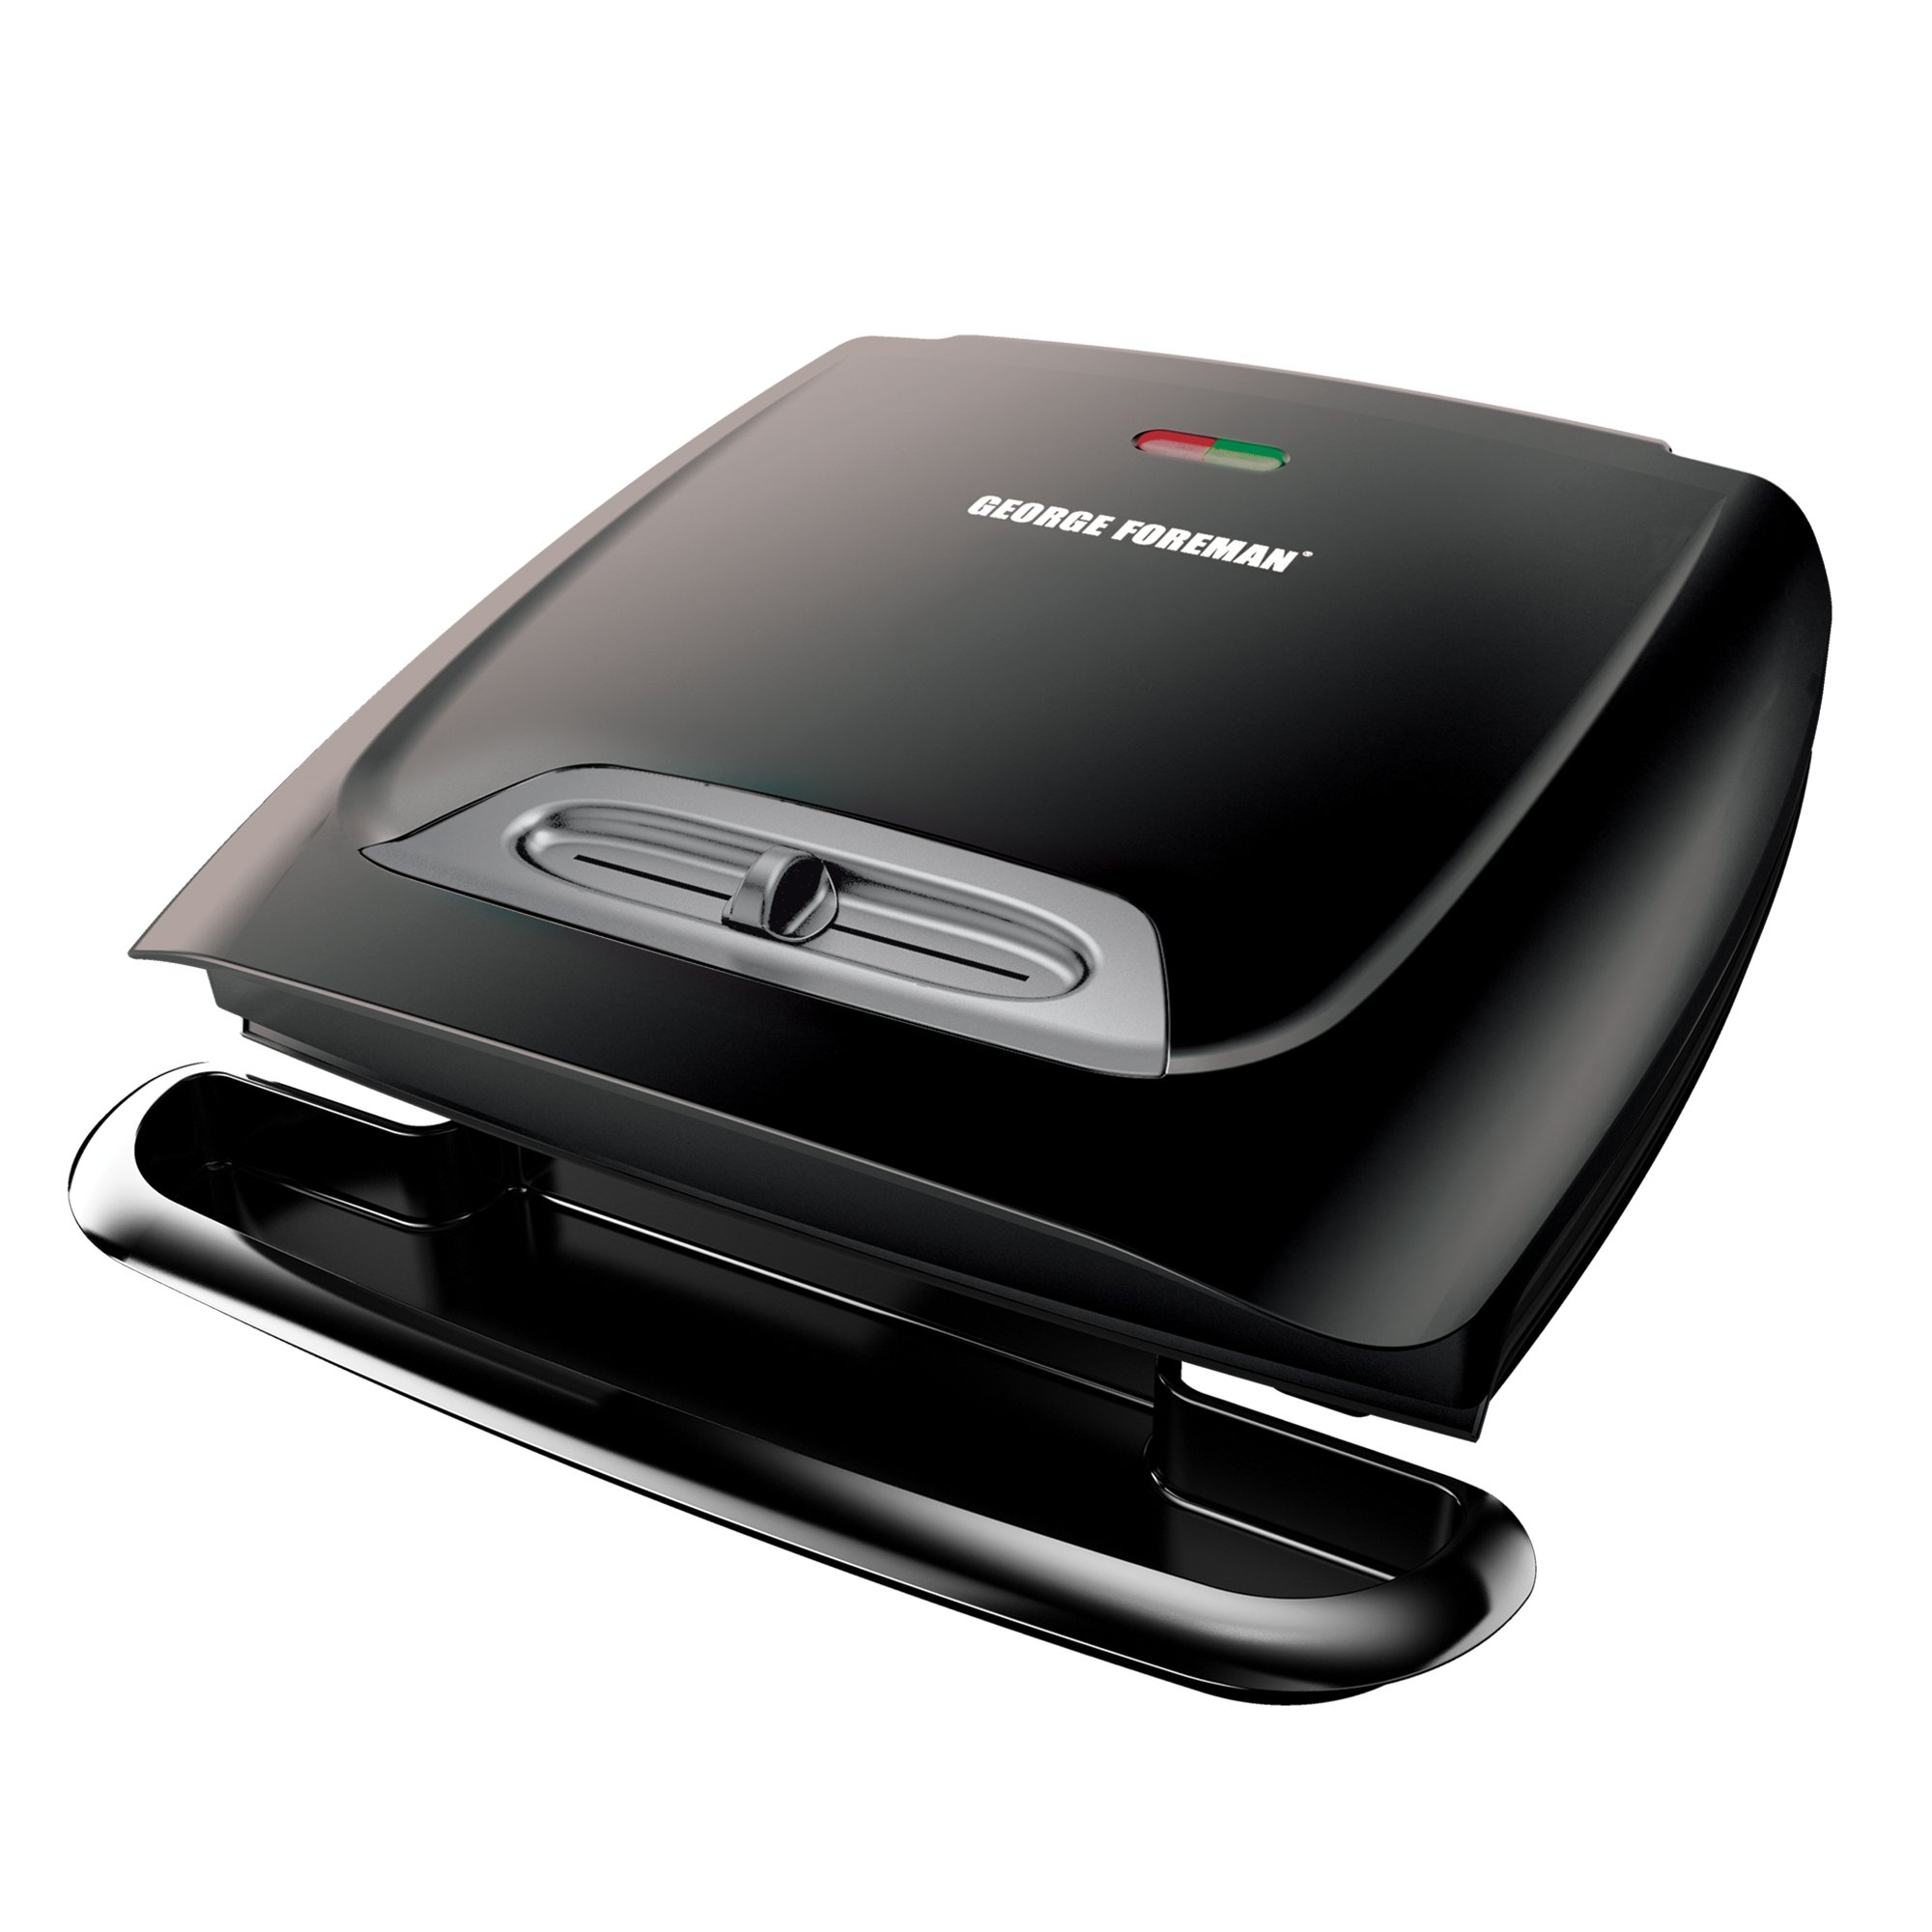 George Foreman GR2121B 8-Serving Classic Plate Grill with Variable Temperature, Black